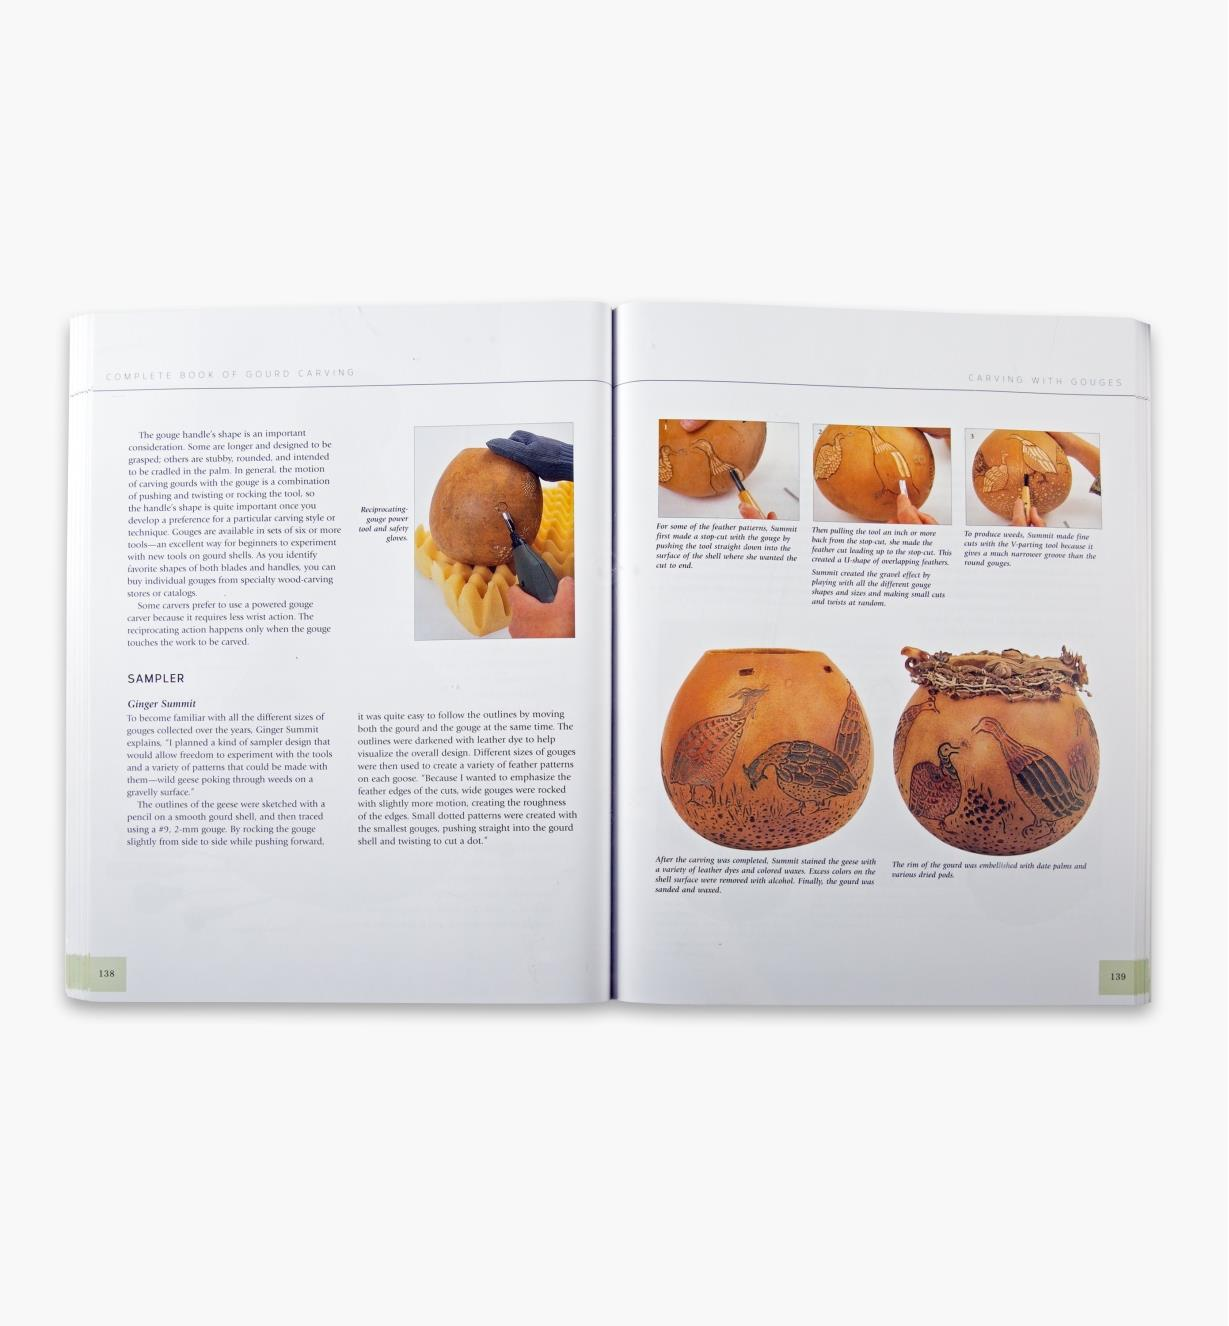 49L5097 - Complete Book of Gourd Carving